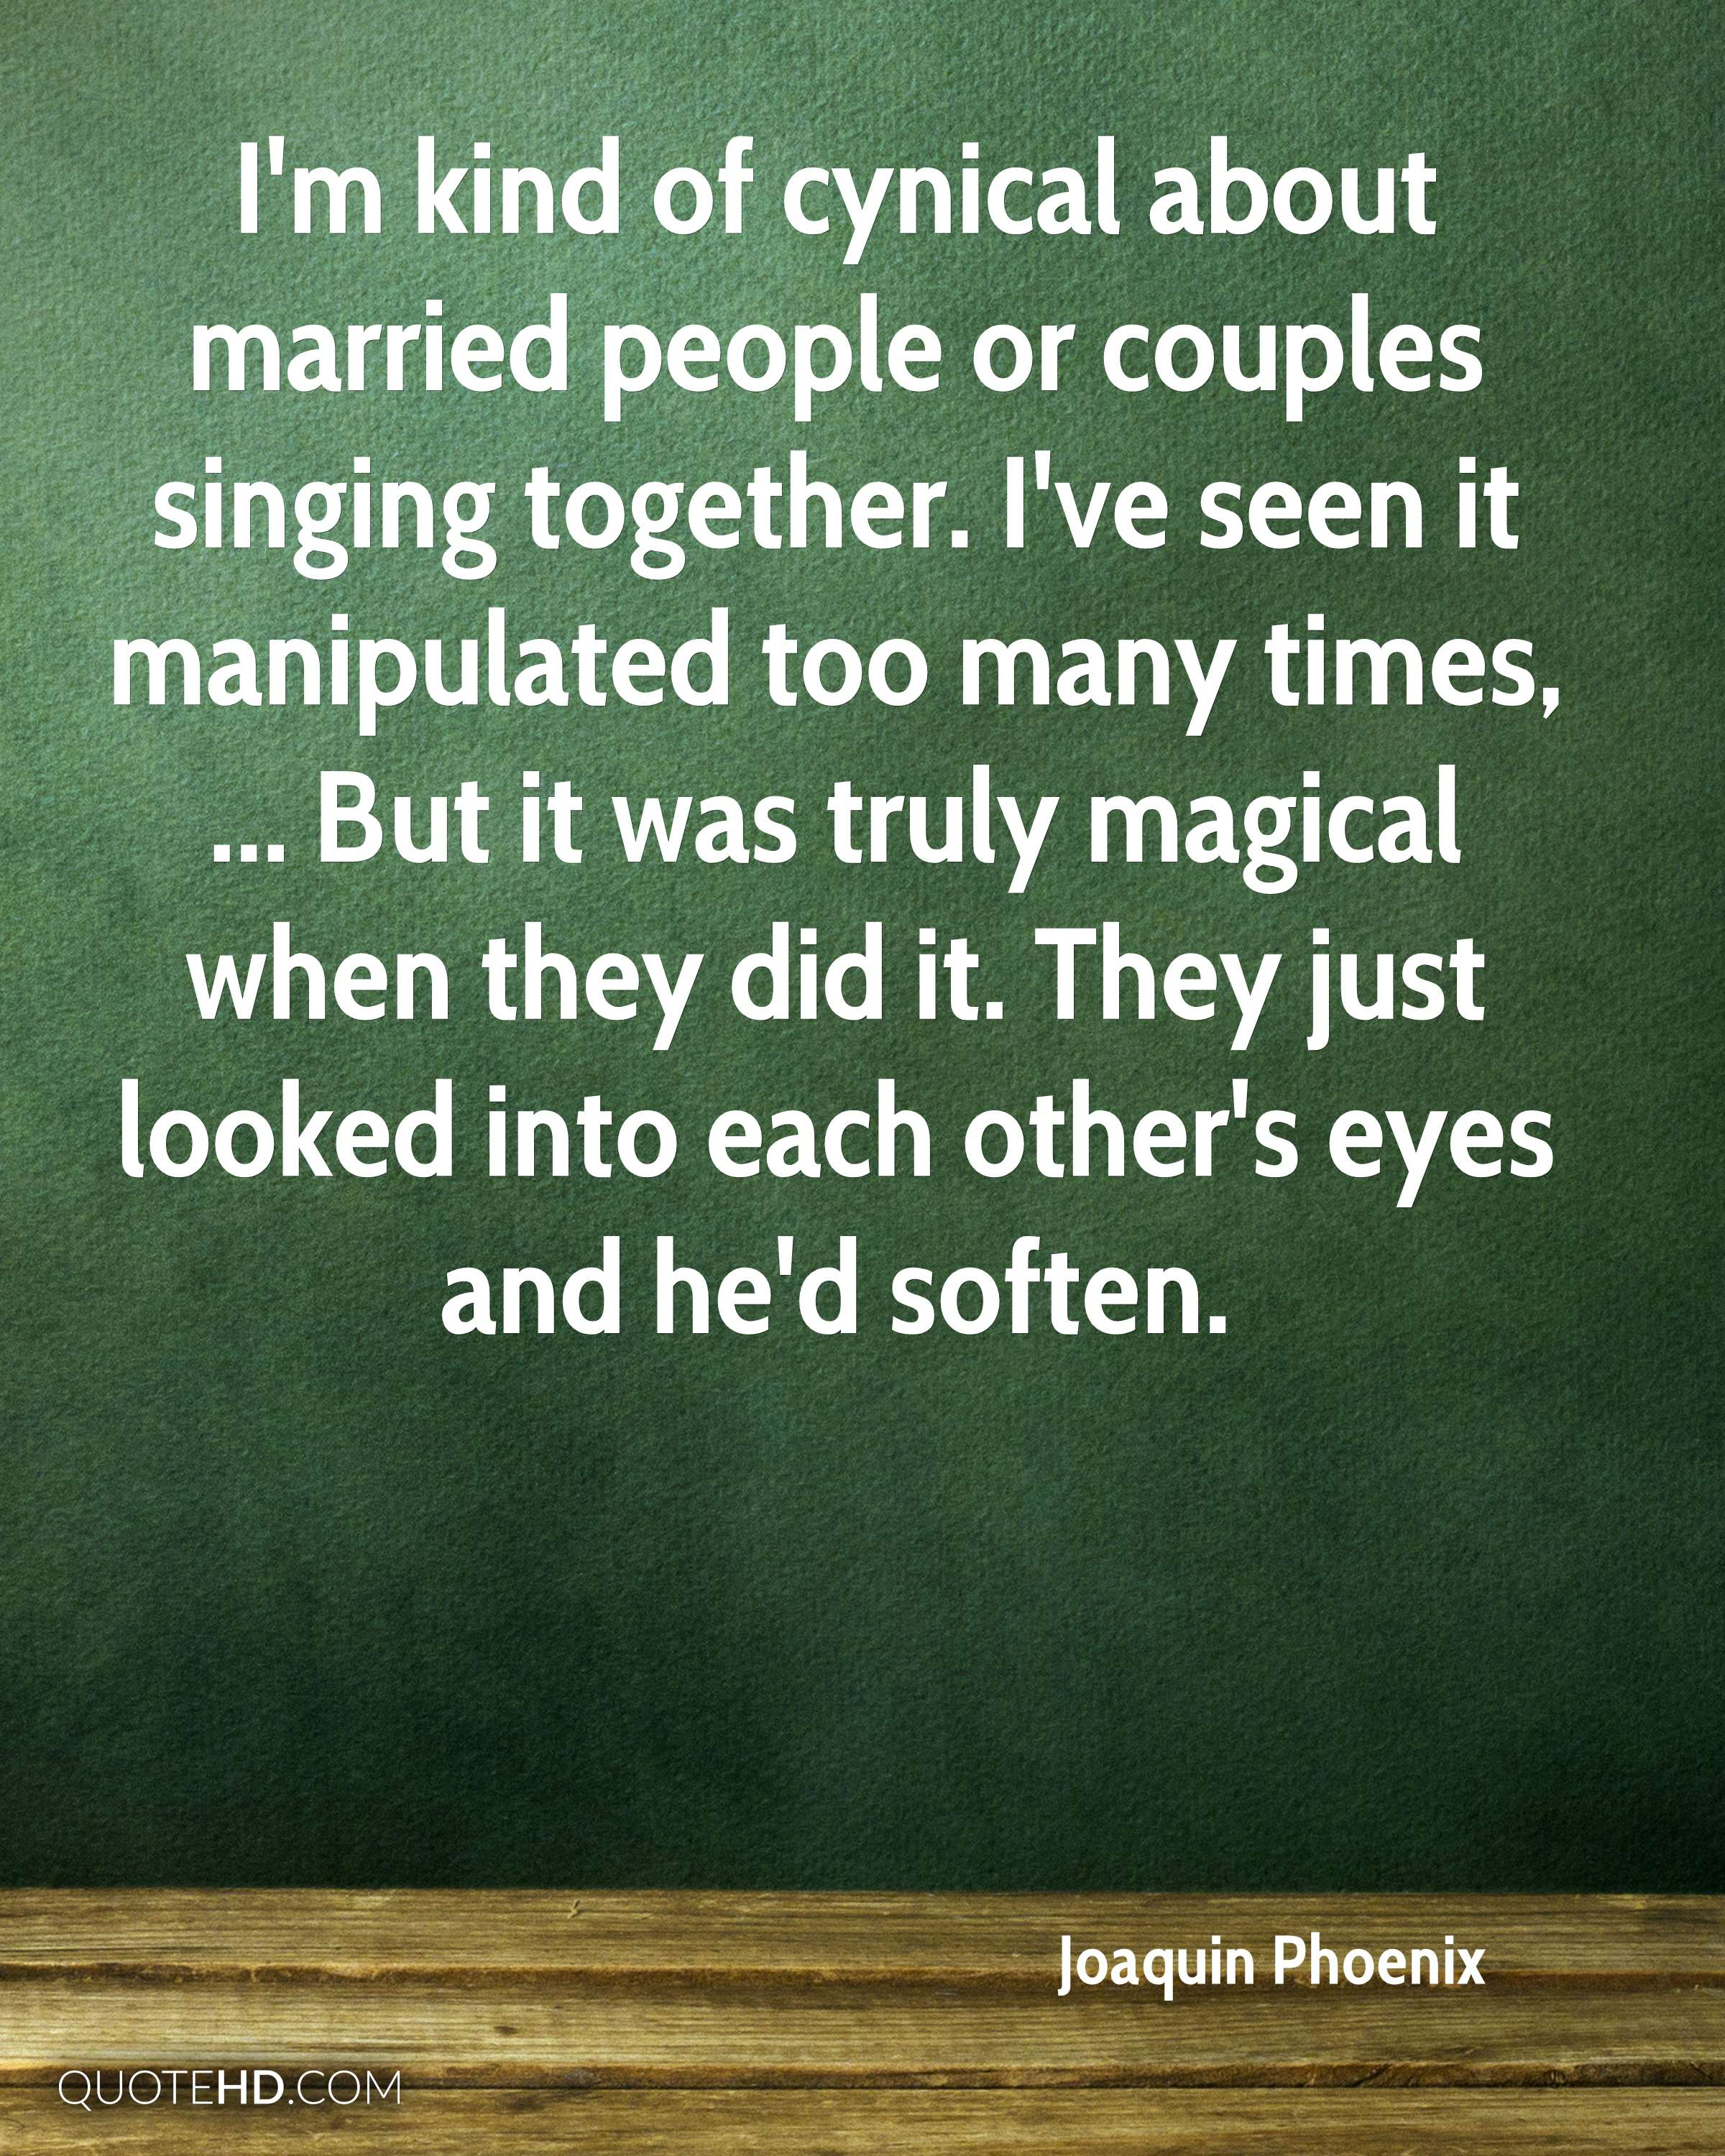 I'm kind of cynical about married people or couples singing together. I've seen it manipulated too many times, ... But it was truly magical when they did it. They just looked into each other's eyes and he'd soften.